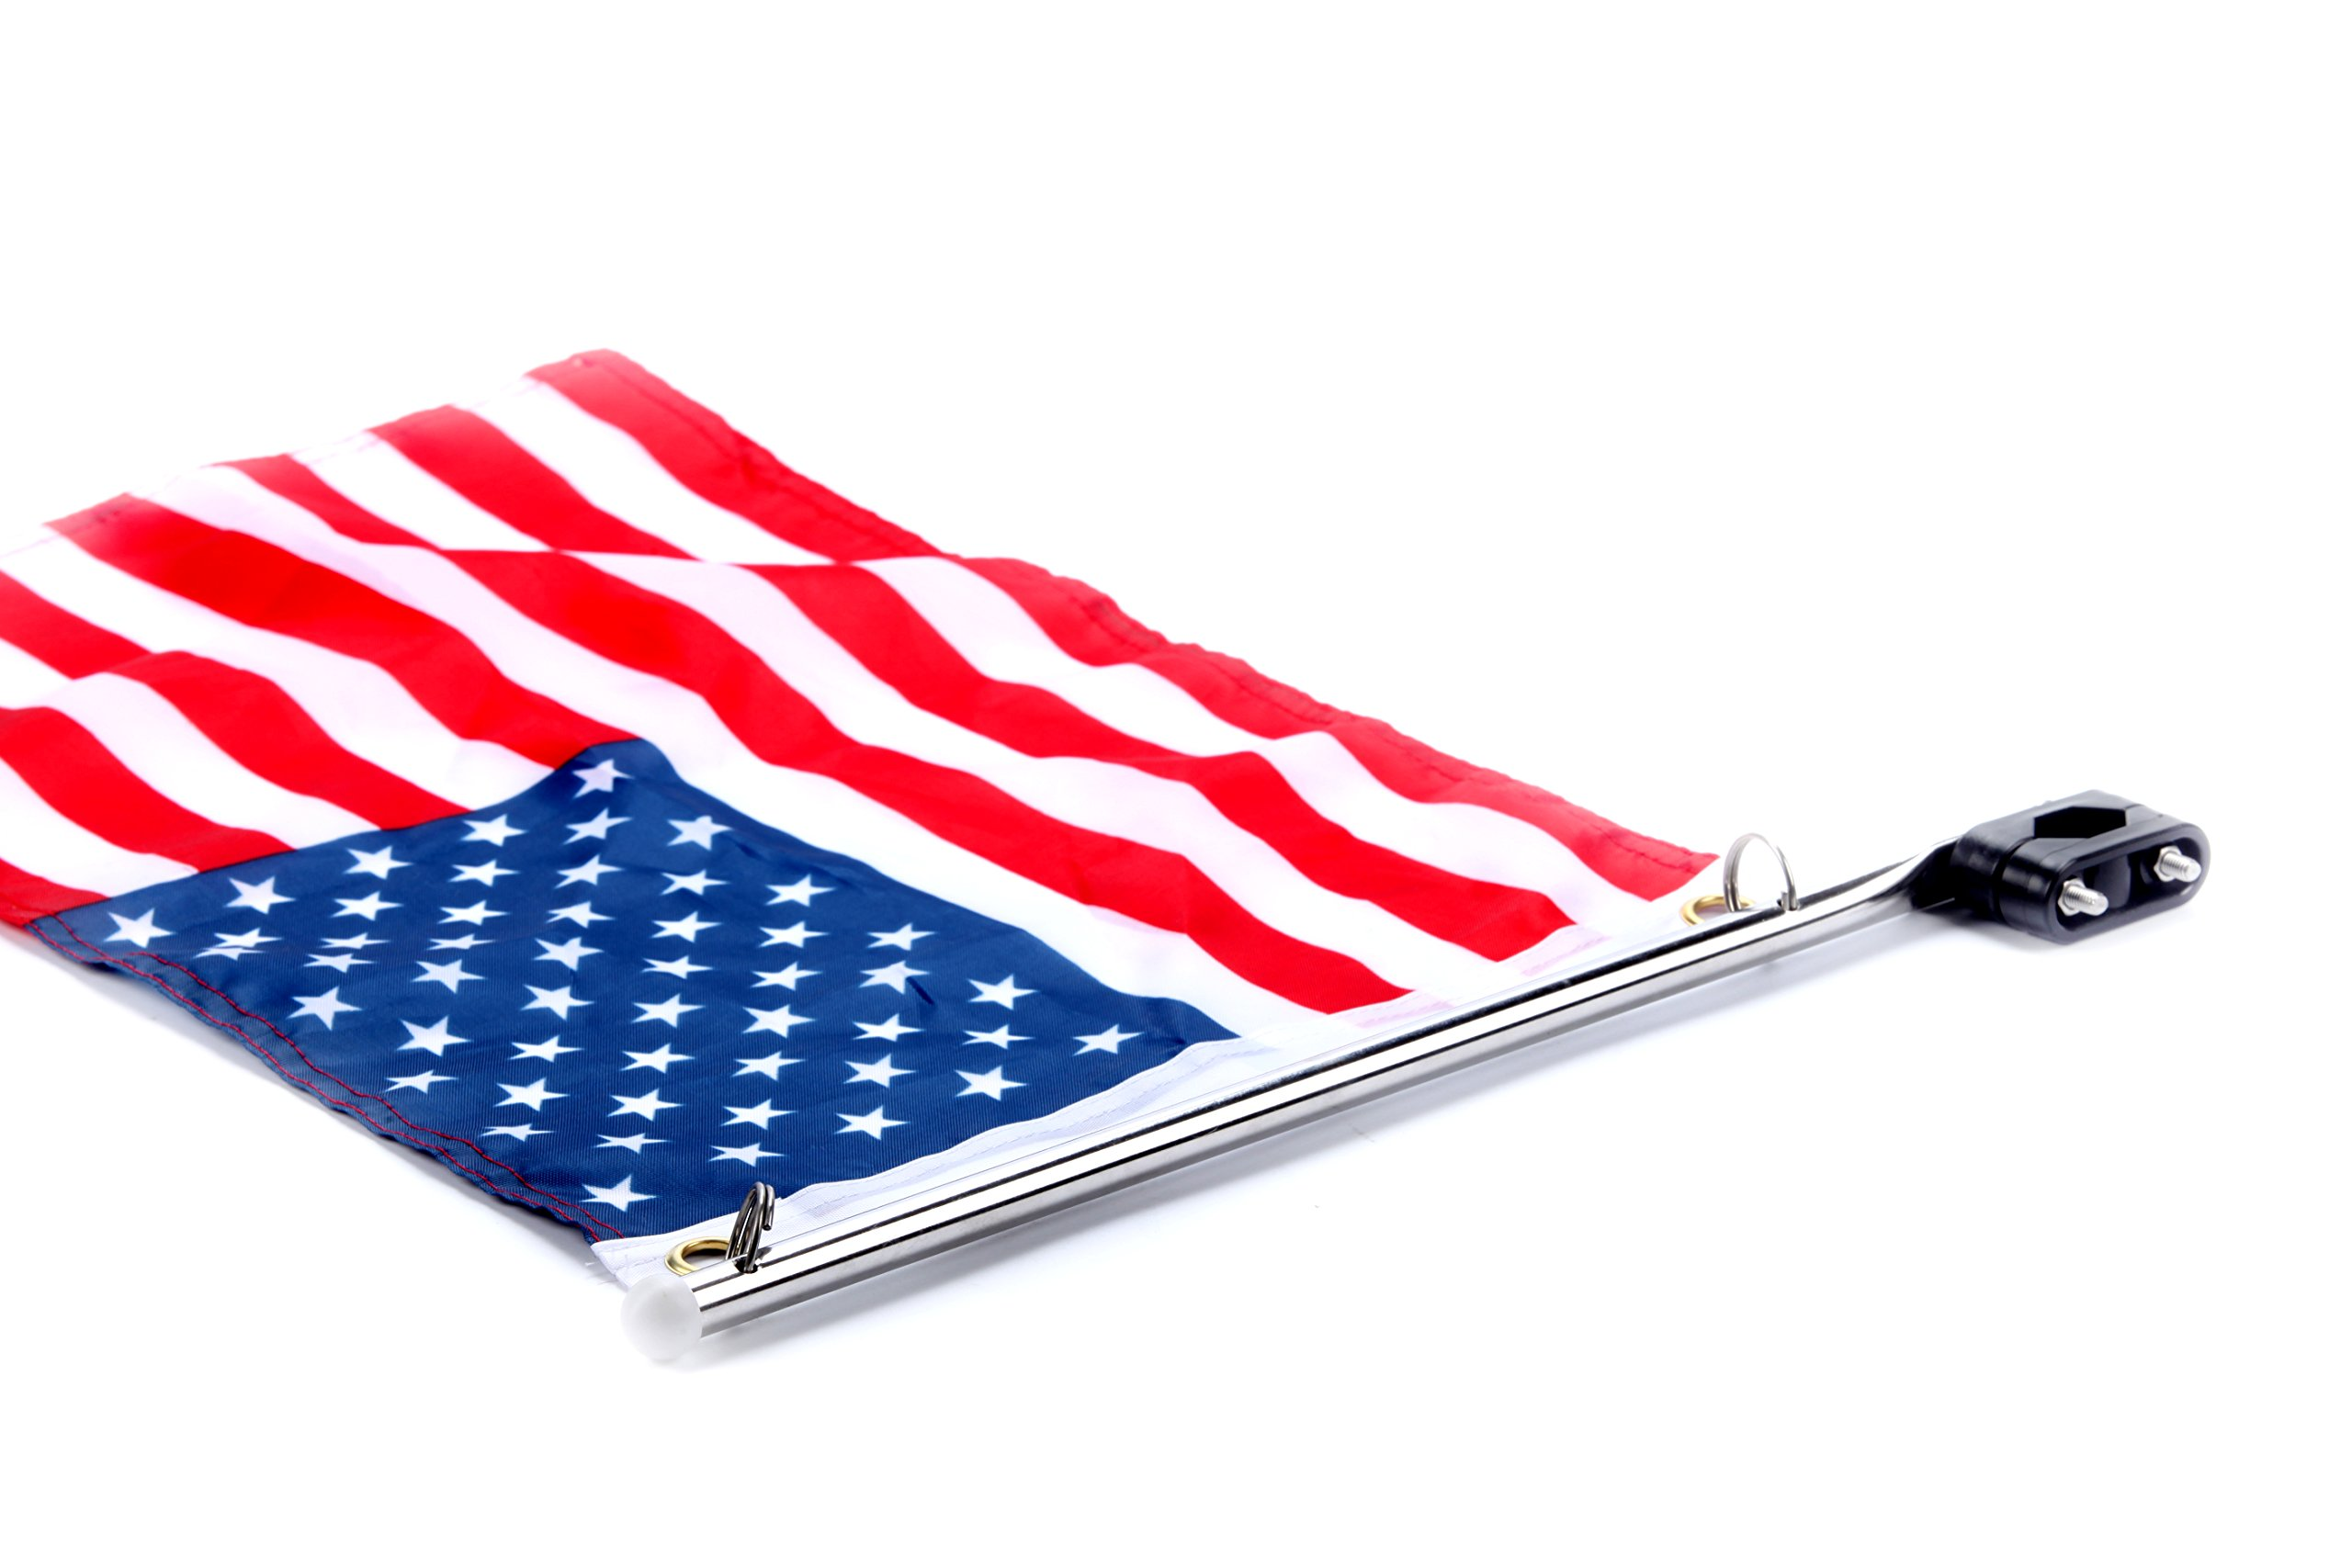 Amarine-made Stainless Steel Rail Mount Boat Pulpit Staff (7/8'' - 1 1/4''), Boat Yacht Marine Flag Pole with US Flag by Amarine-made